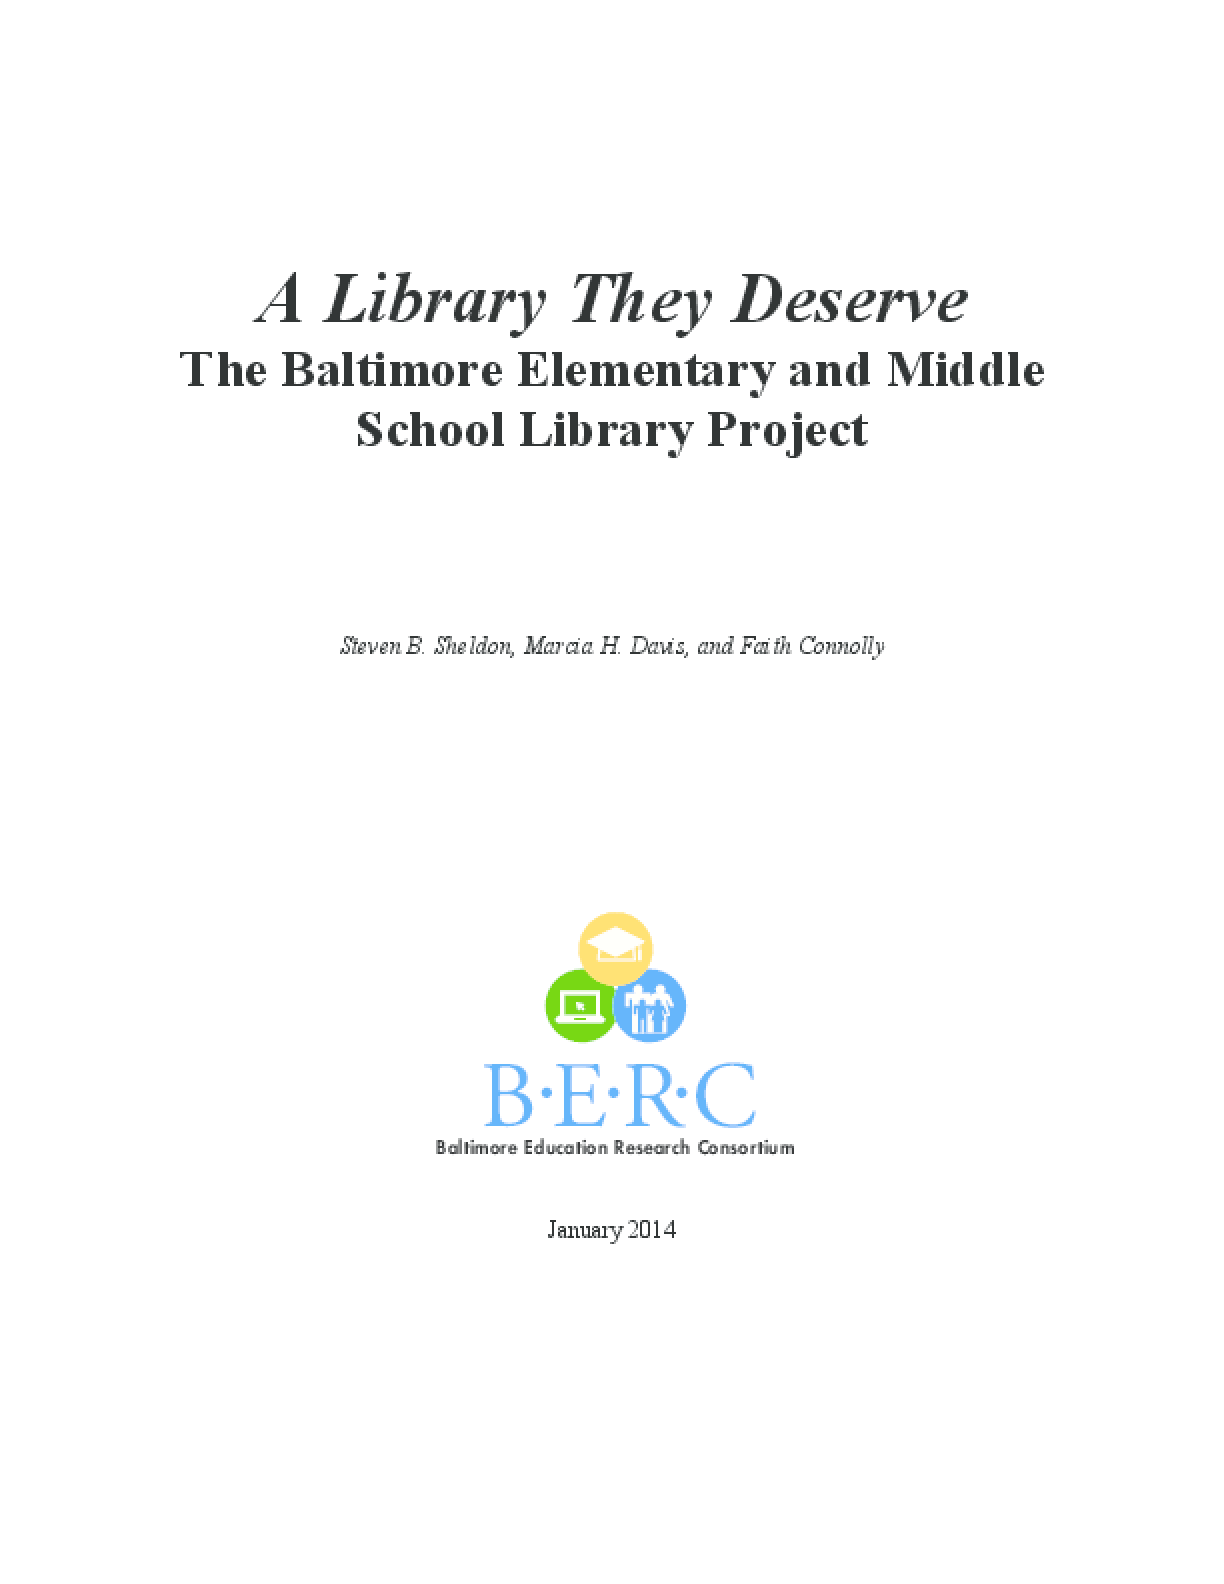 A Library They Deserve: The Baltimore Elementary and Middle School Library Project